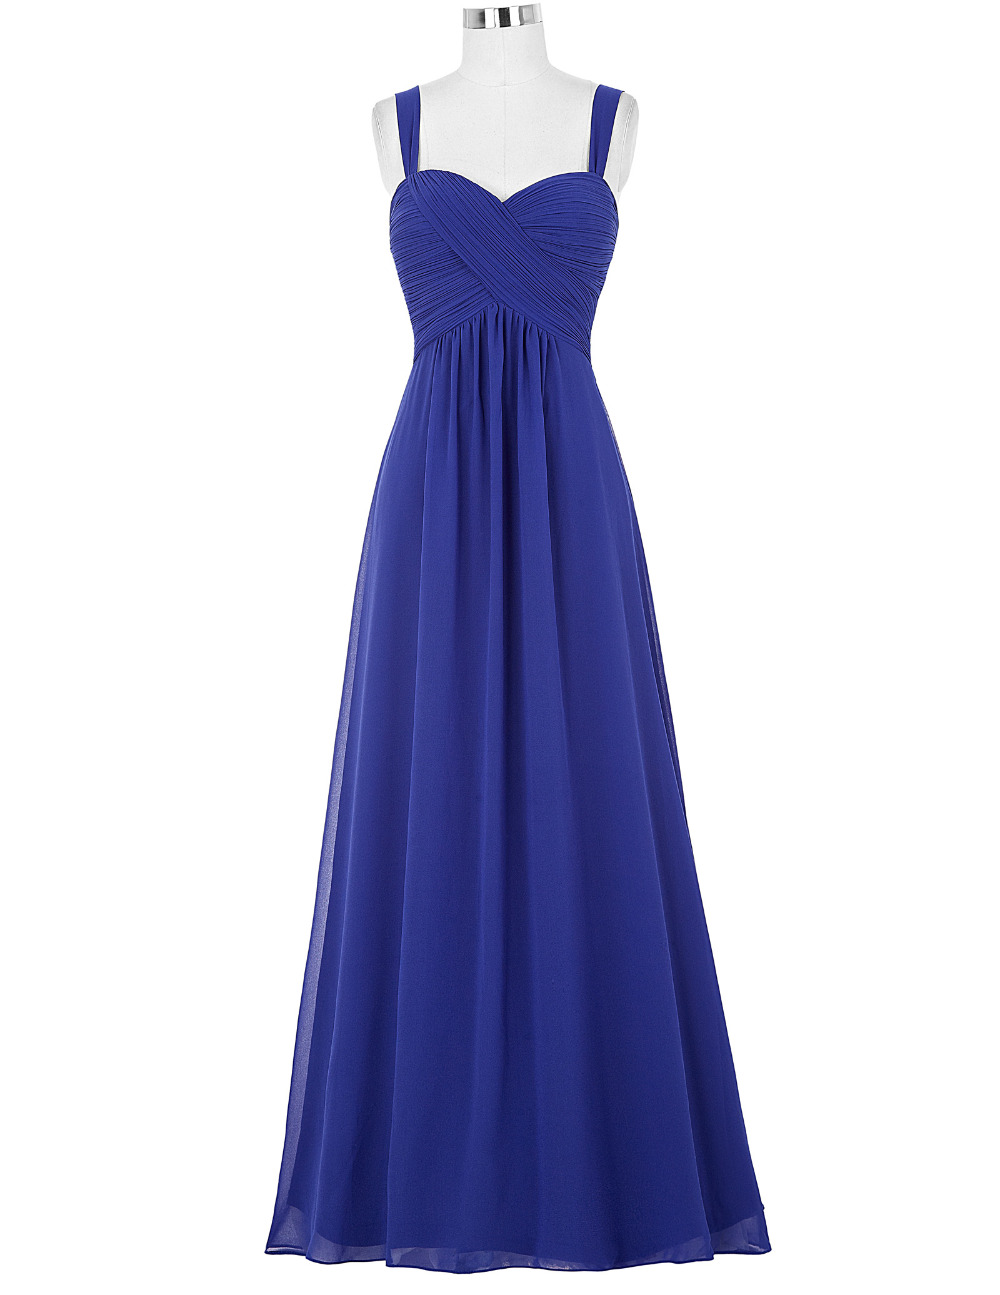 Royal blue bridesmaids dresses reviews online shopping for Royal blue wedding dresses cheap